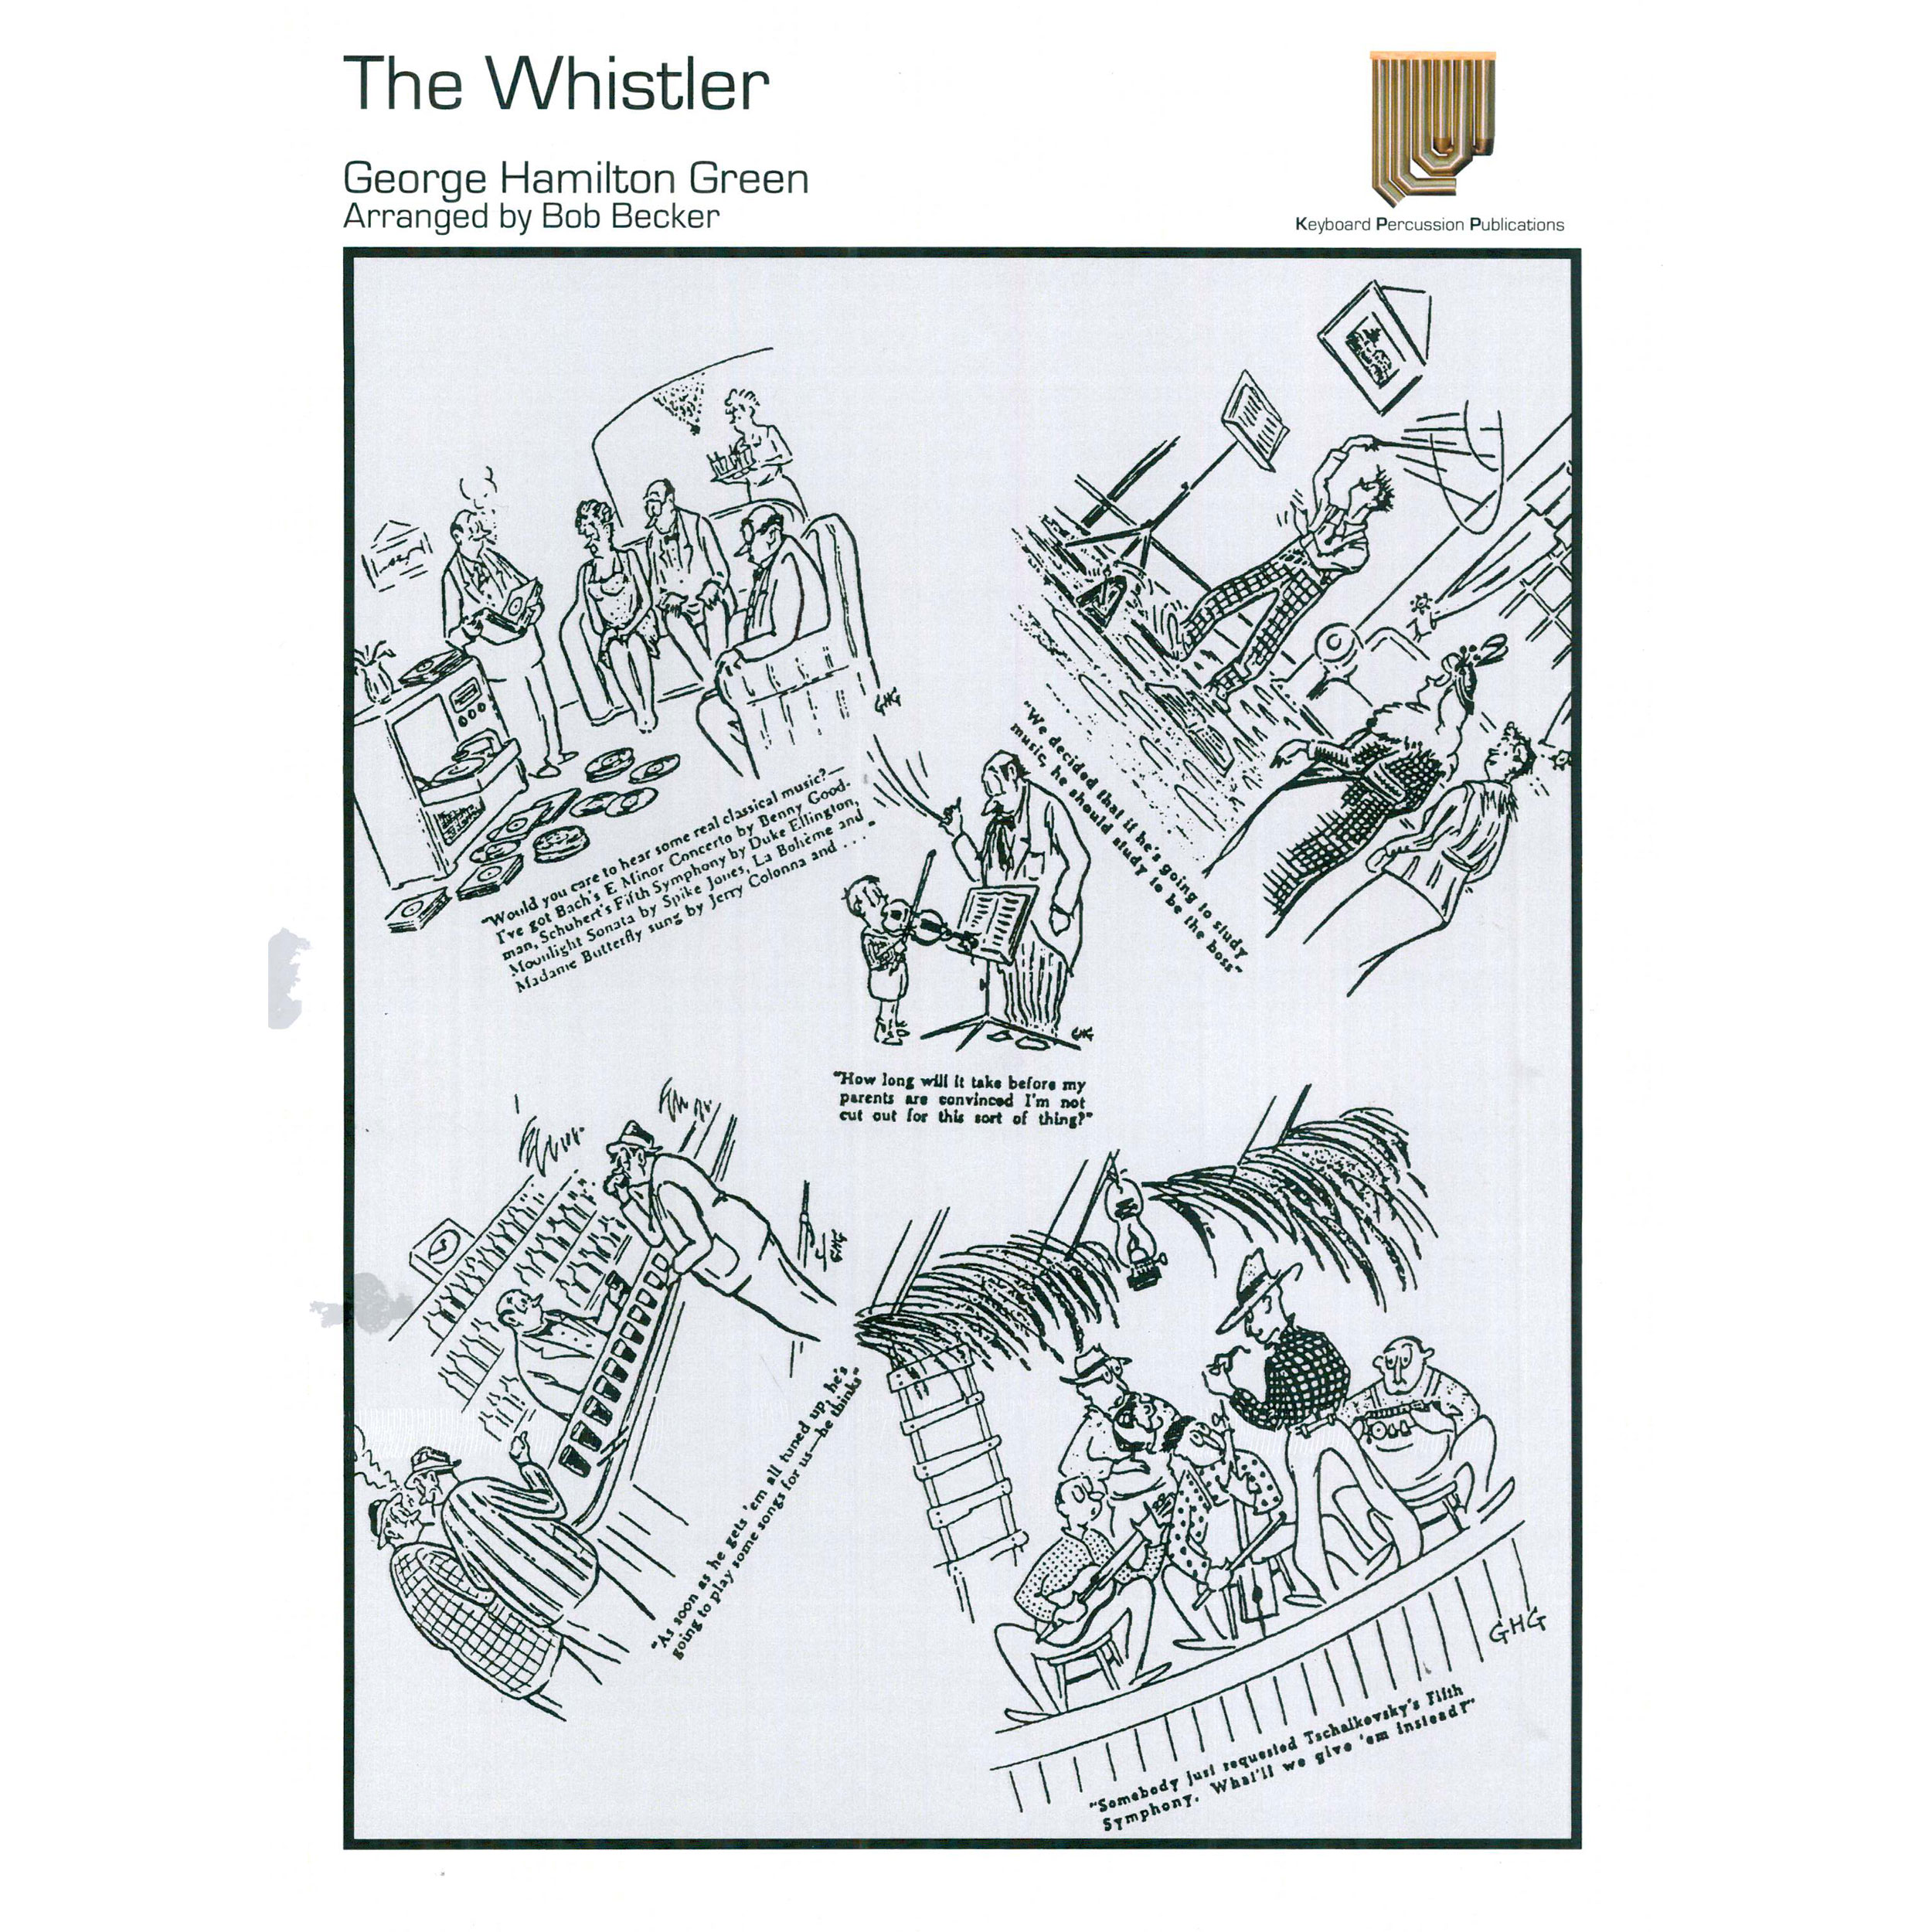 The Whistler by George Hamilton Green arr. Bob Becker